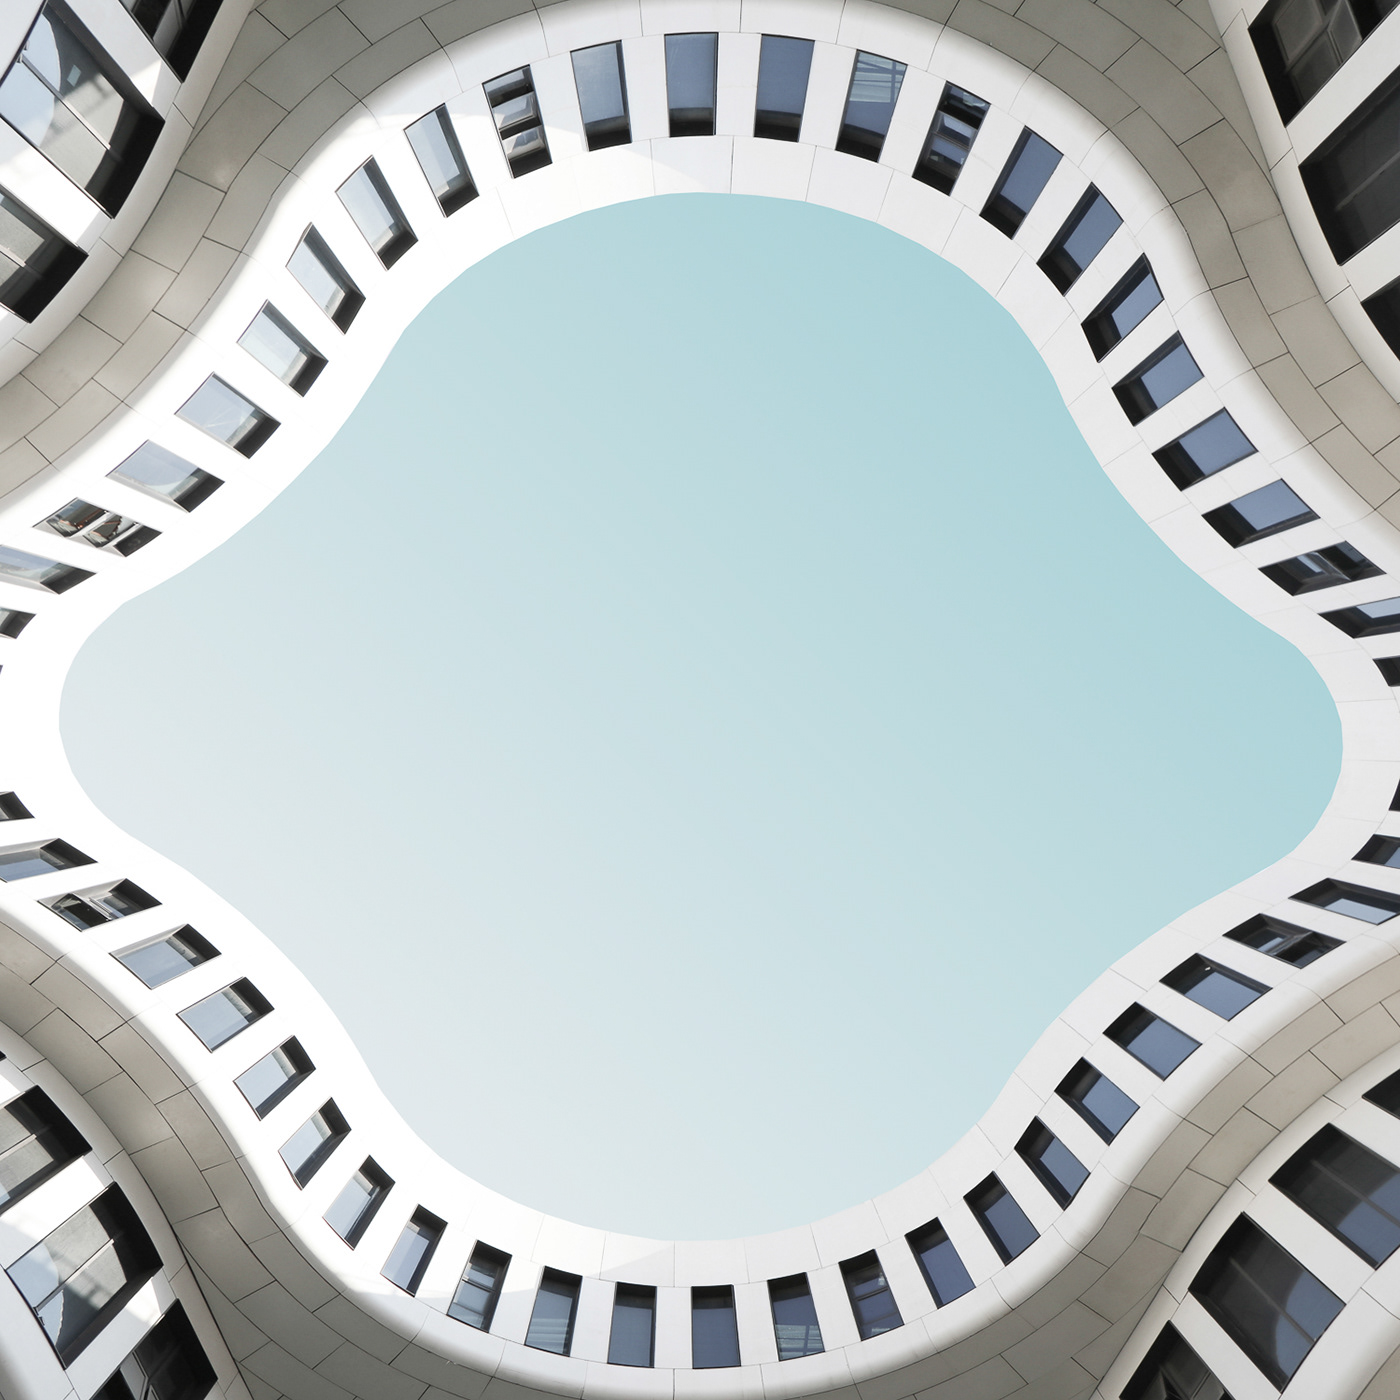 Stunning Architecture Photography: Beautified China II by Kris Provoost